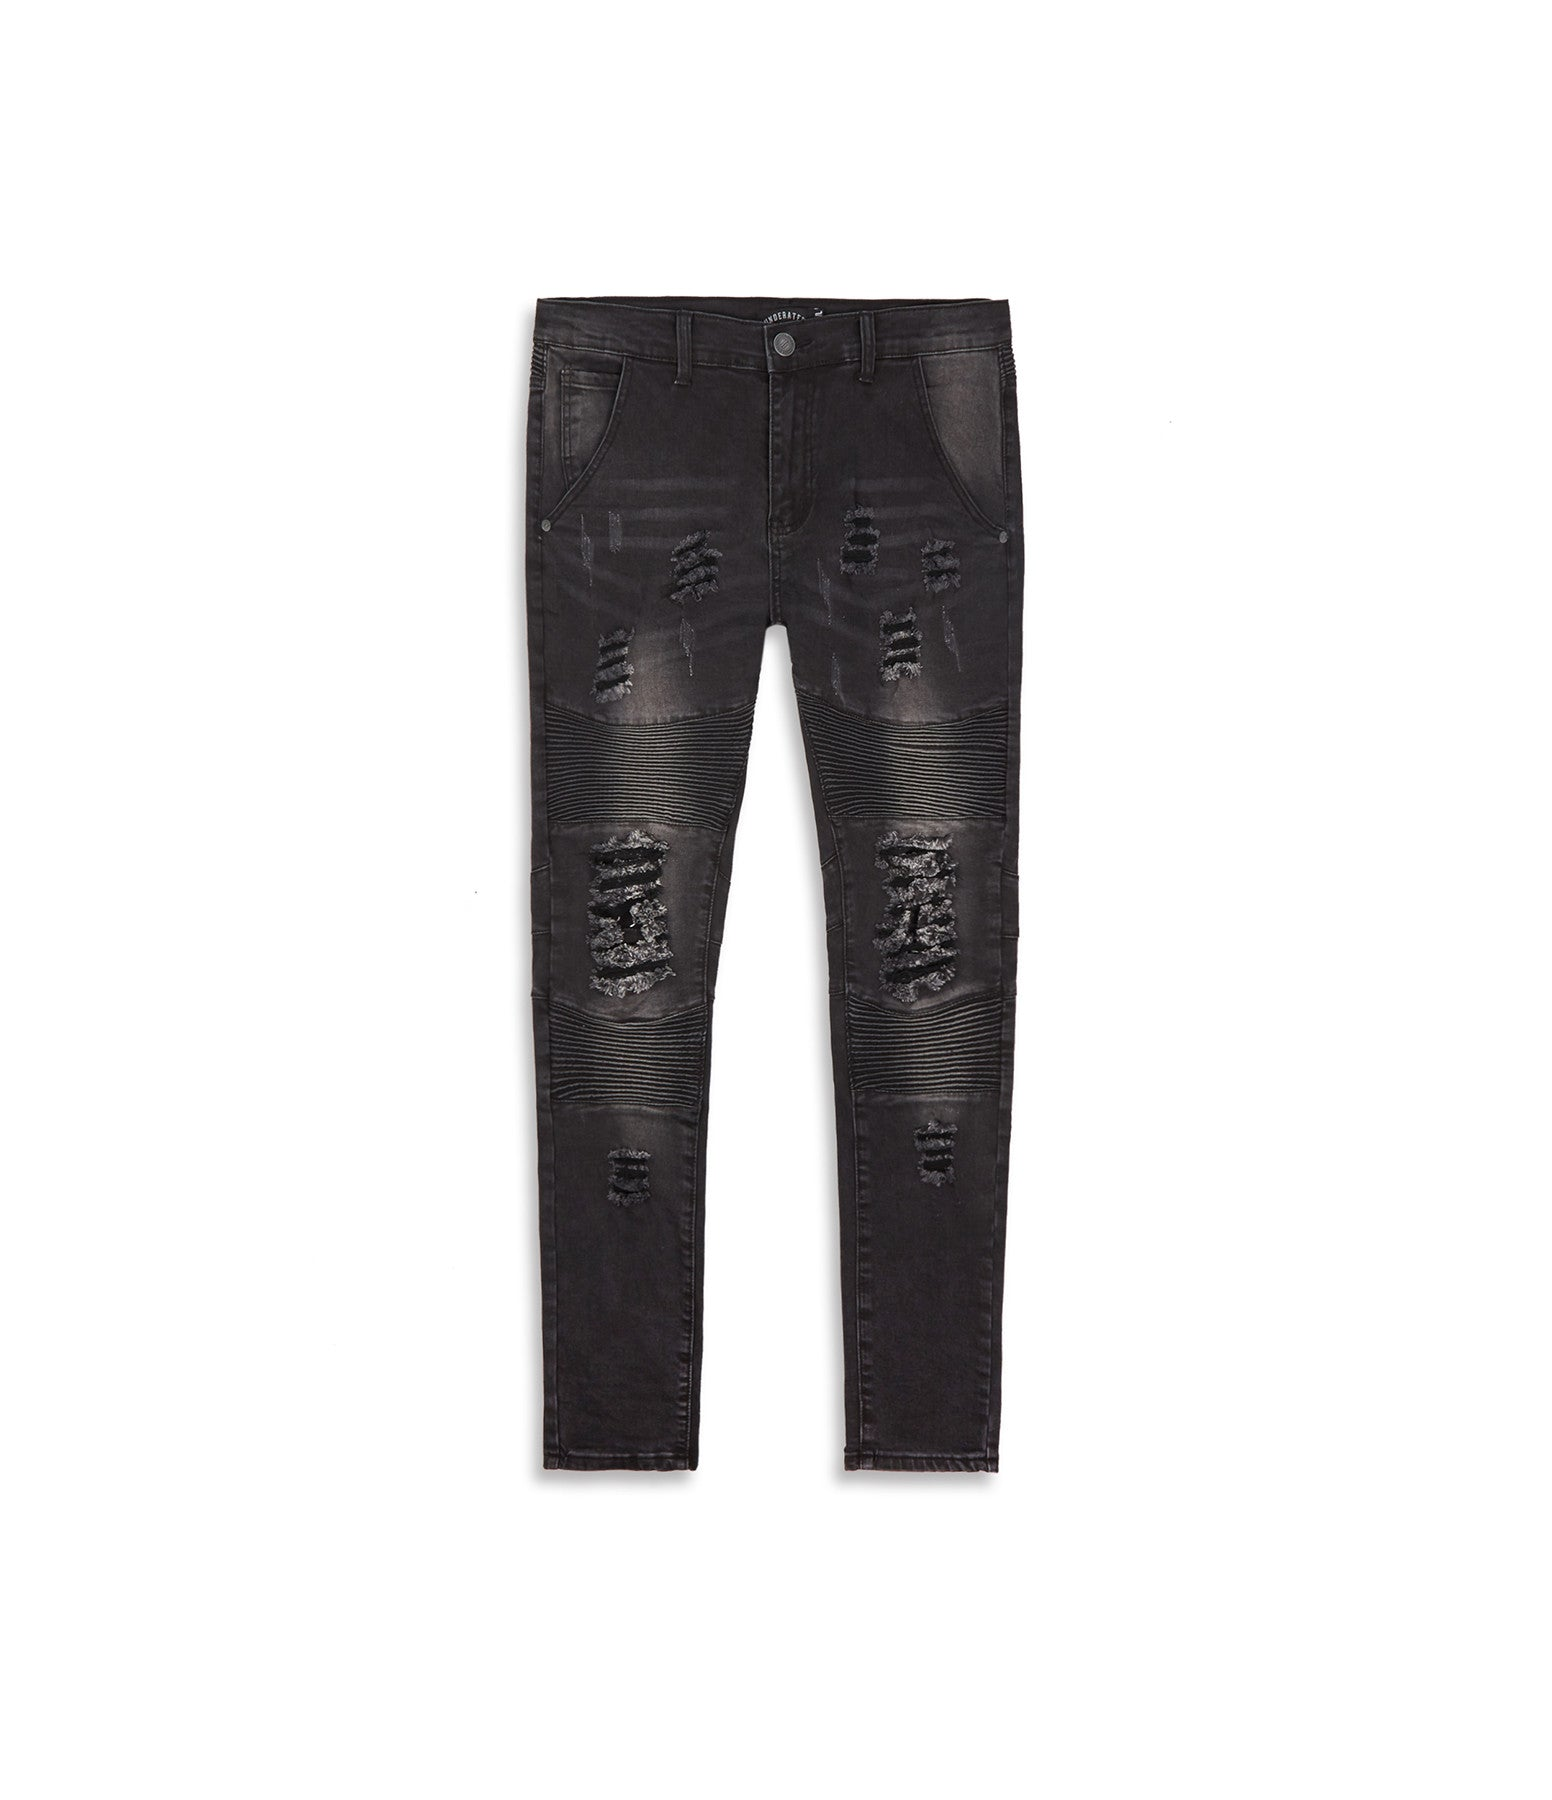 JN152 Distressed Stone Wash Biker Denim - Black - underated london - underatedco - 9